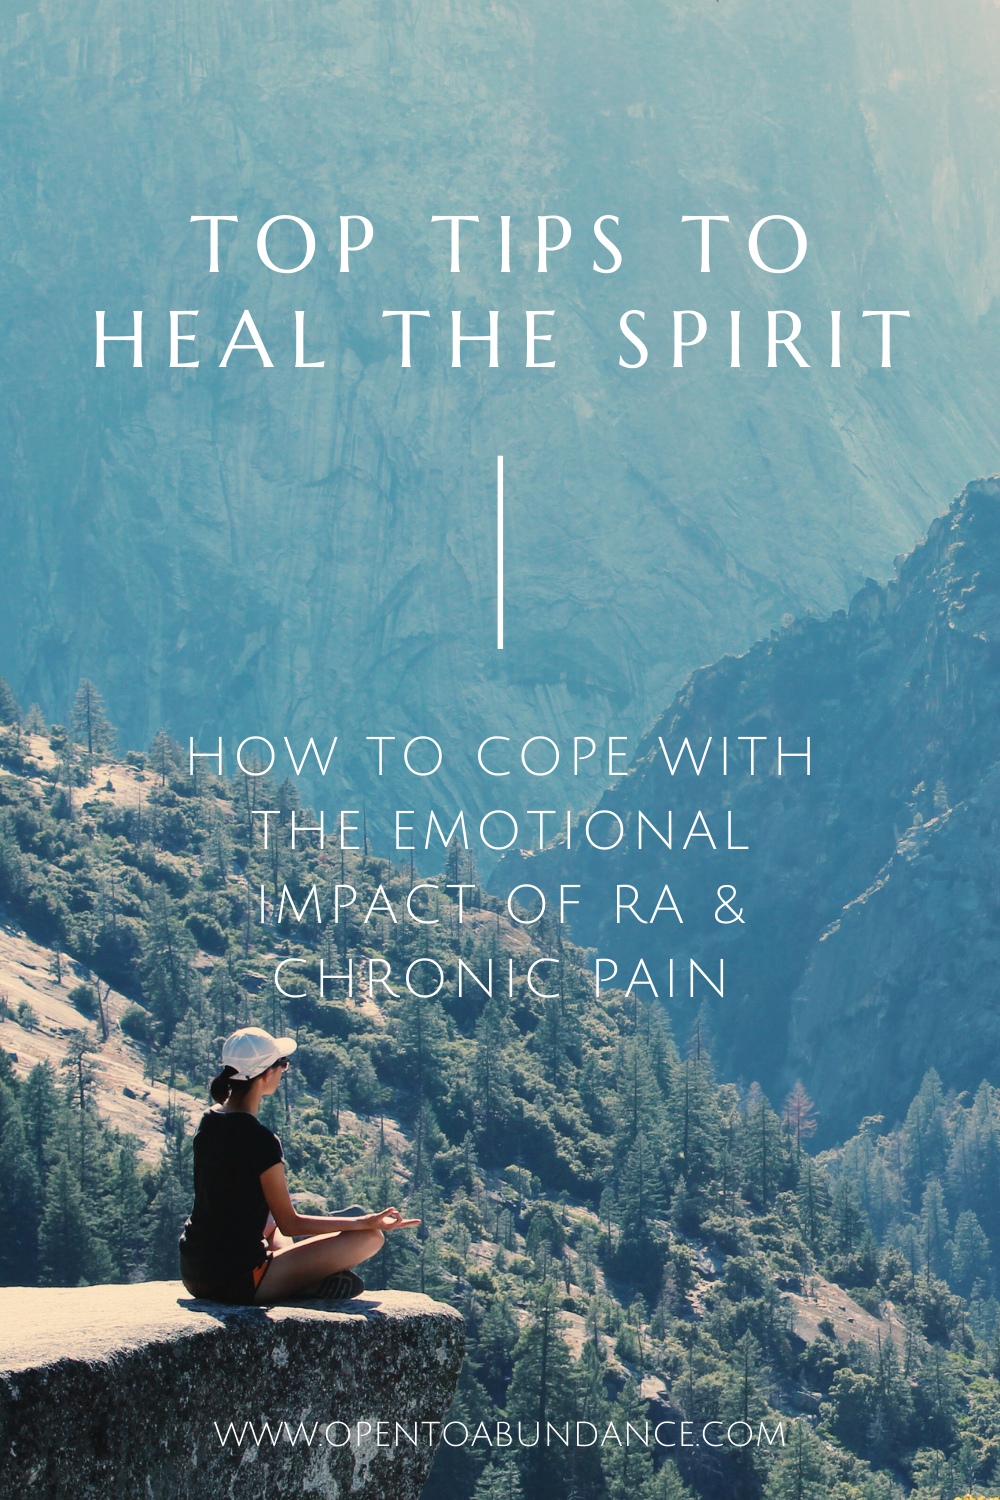 5. Learn self-care habits to heal the emotional pain of chronic illness and pain. 8 simple habits to soothe the body, mind and spirit. #opentoabundance #rheumatoidarthritis #chronicpainandanxiety #emotionsandchronicdisease #reduceanxiety